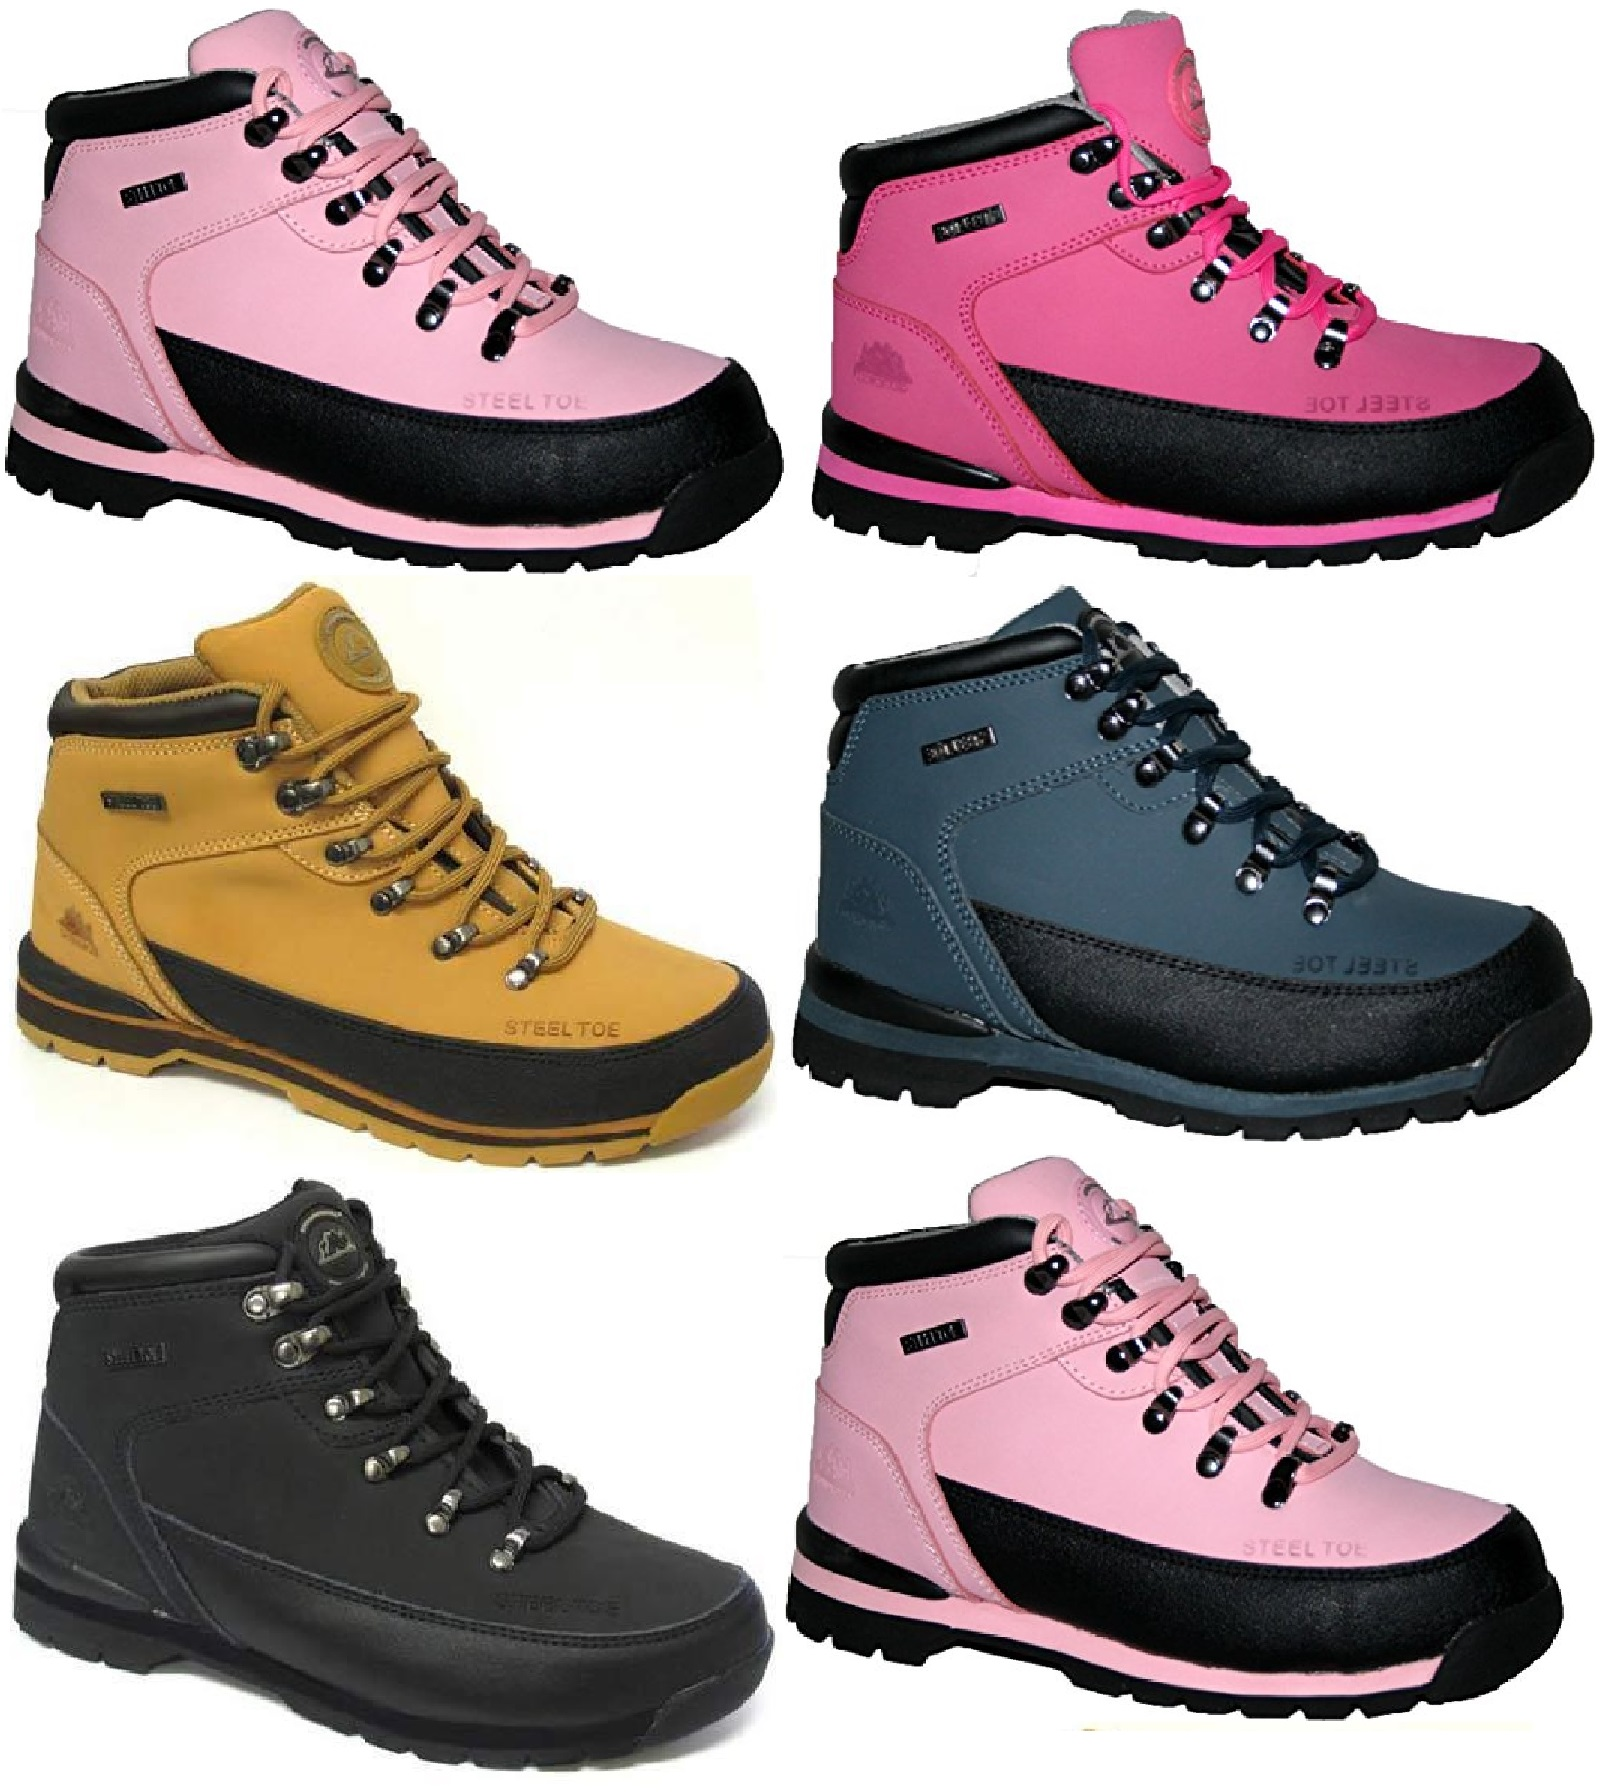 8e4f92035f6 Details about LADIES WOMENS WORK GROUNDWORK SAFETY TRAINERS STEEL TOE CAPS  LEATHER BOOTS SZ